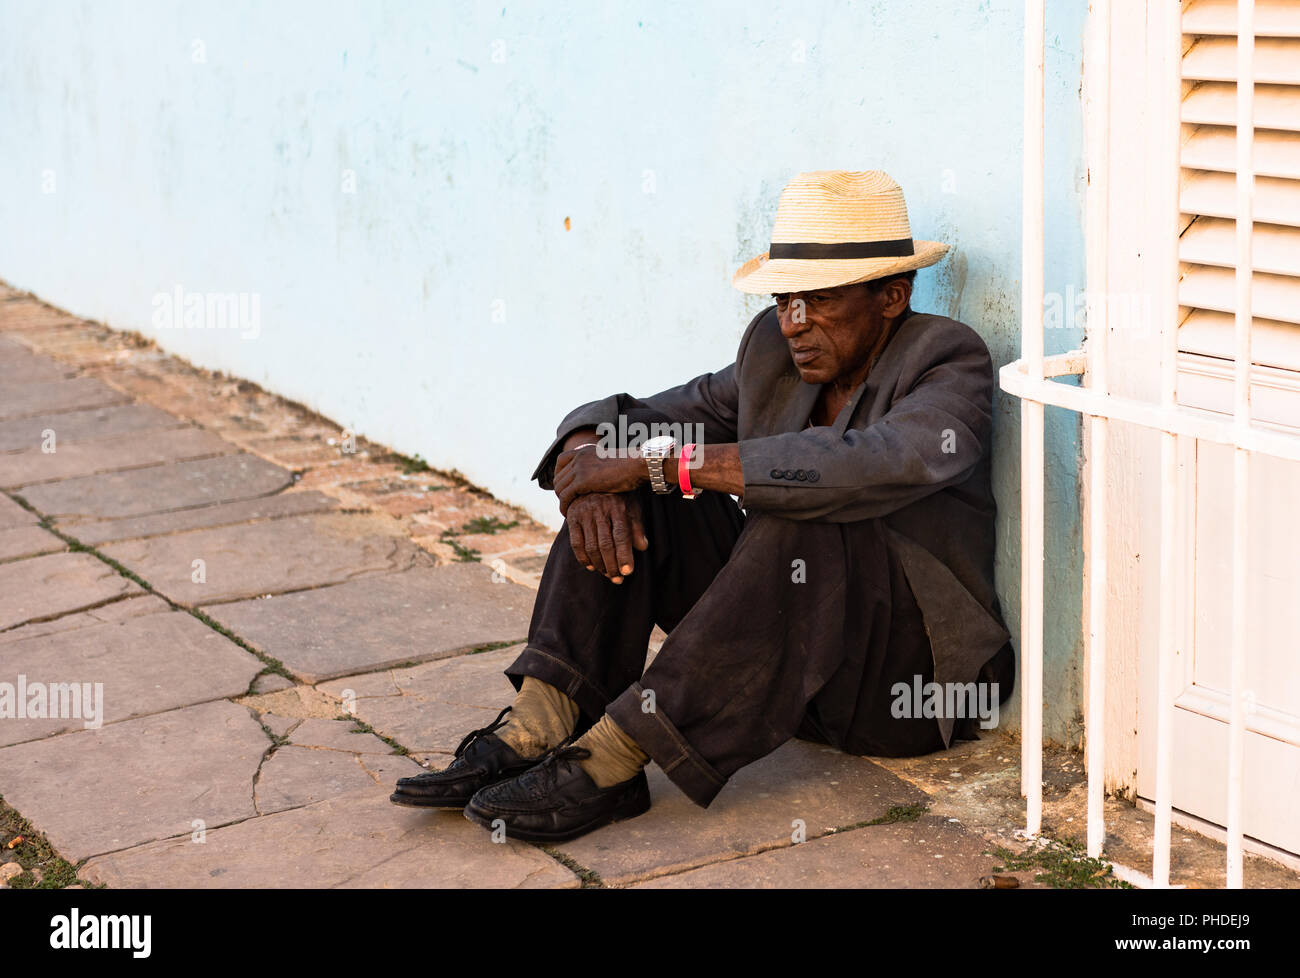 Trinidad / Cuba - March 15, 2016: Indigent Cuban man, wearing straw fedora and well-worn suit, sits on ground against blue wall in plaza square. - Stock Image